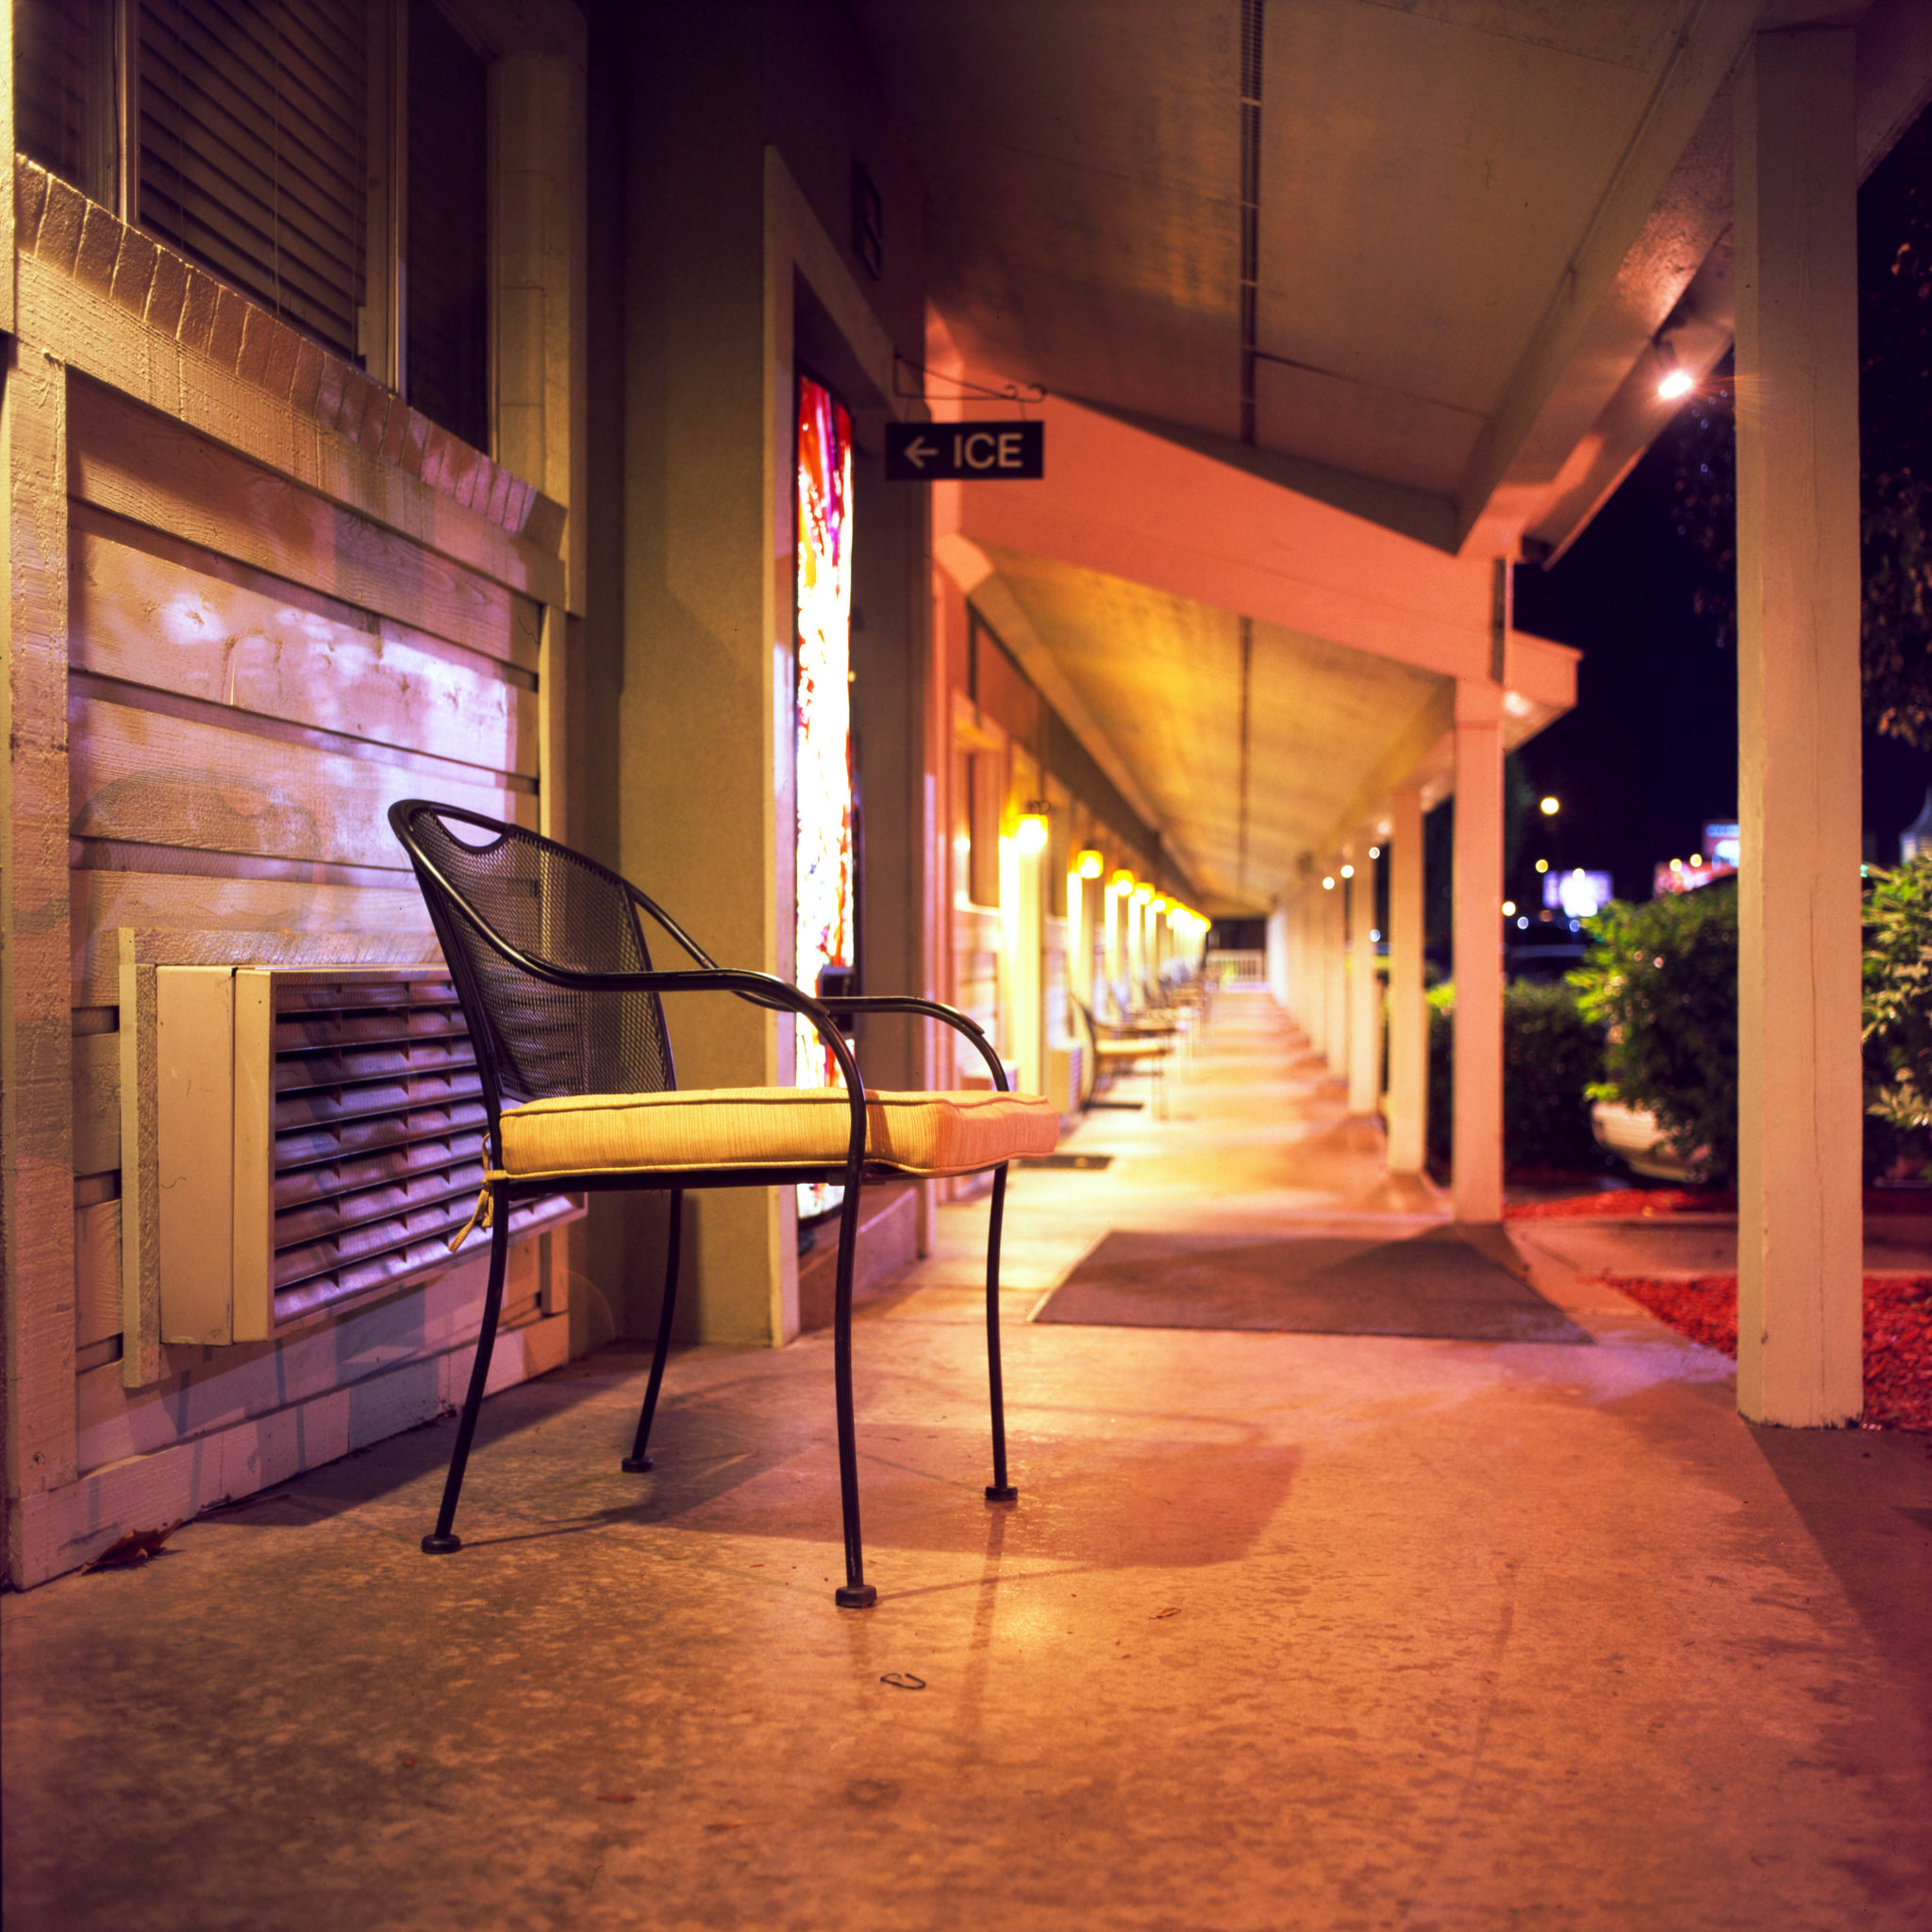 A chair sits outside the vending machine at the motel.